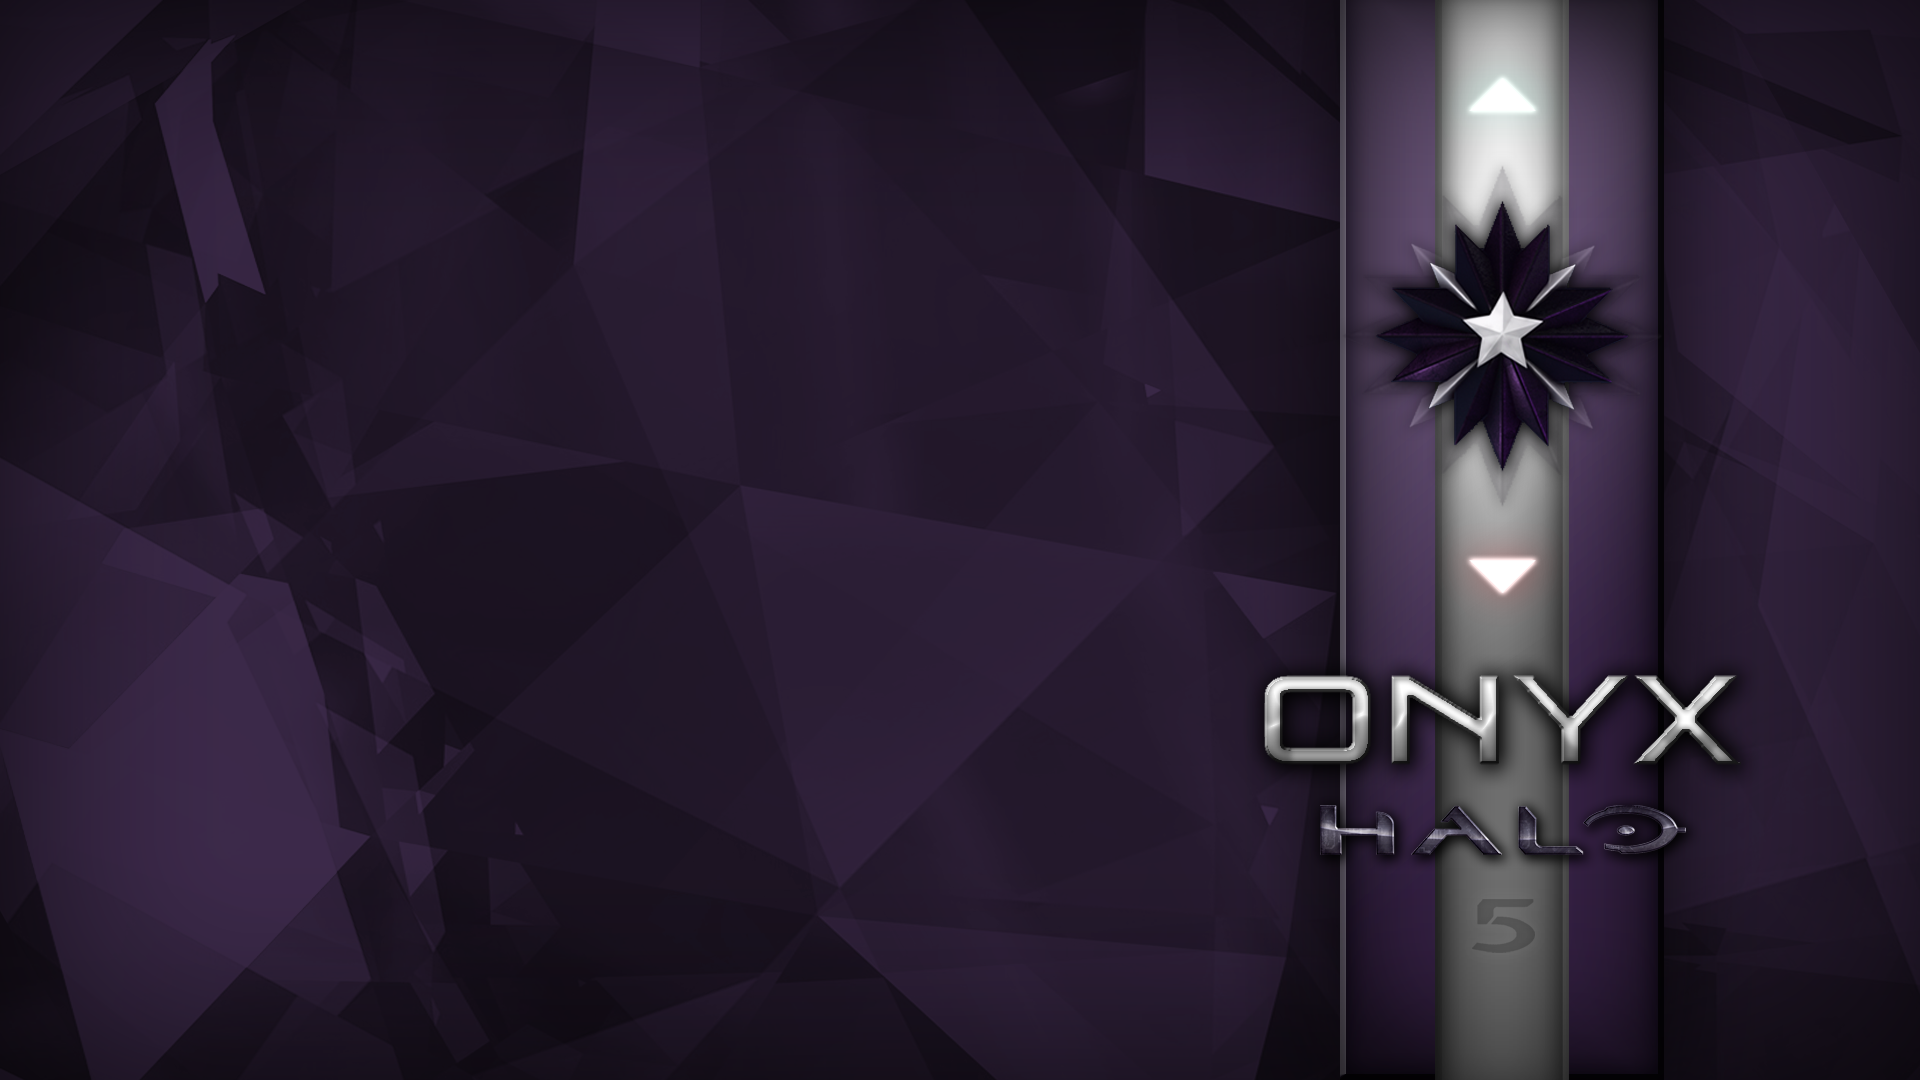 Halo-ONYX-Rank-Background-I-made-1920x1080-Need-iPhone-S-Plus-Background-for-I-wallpaper-wp3806210